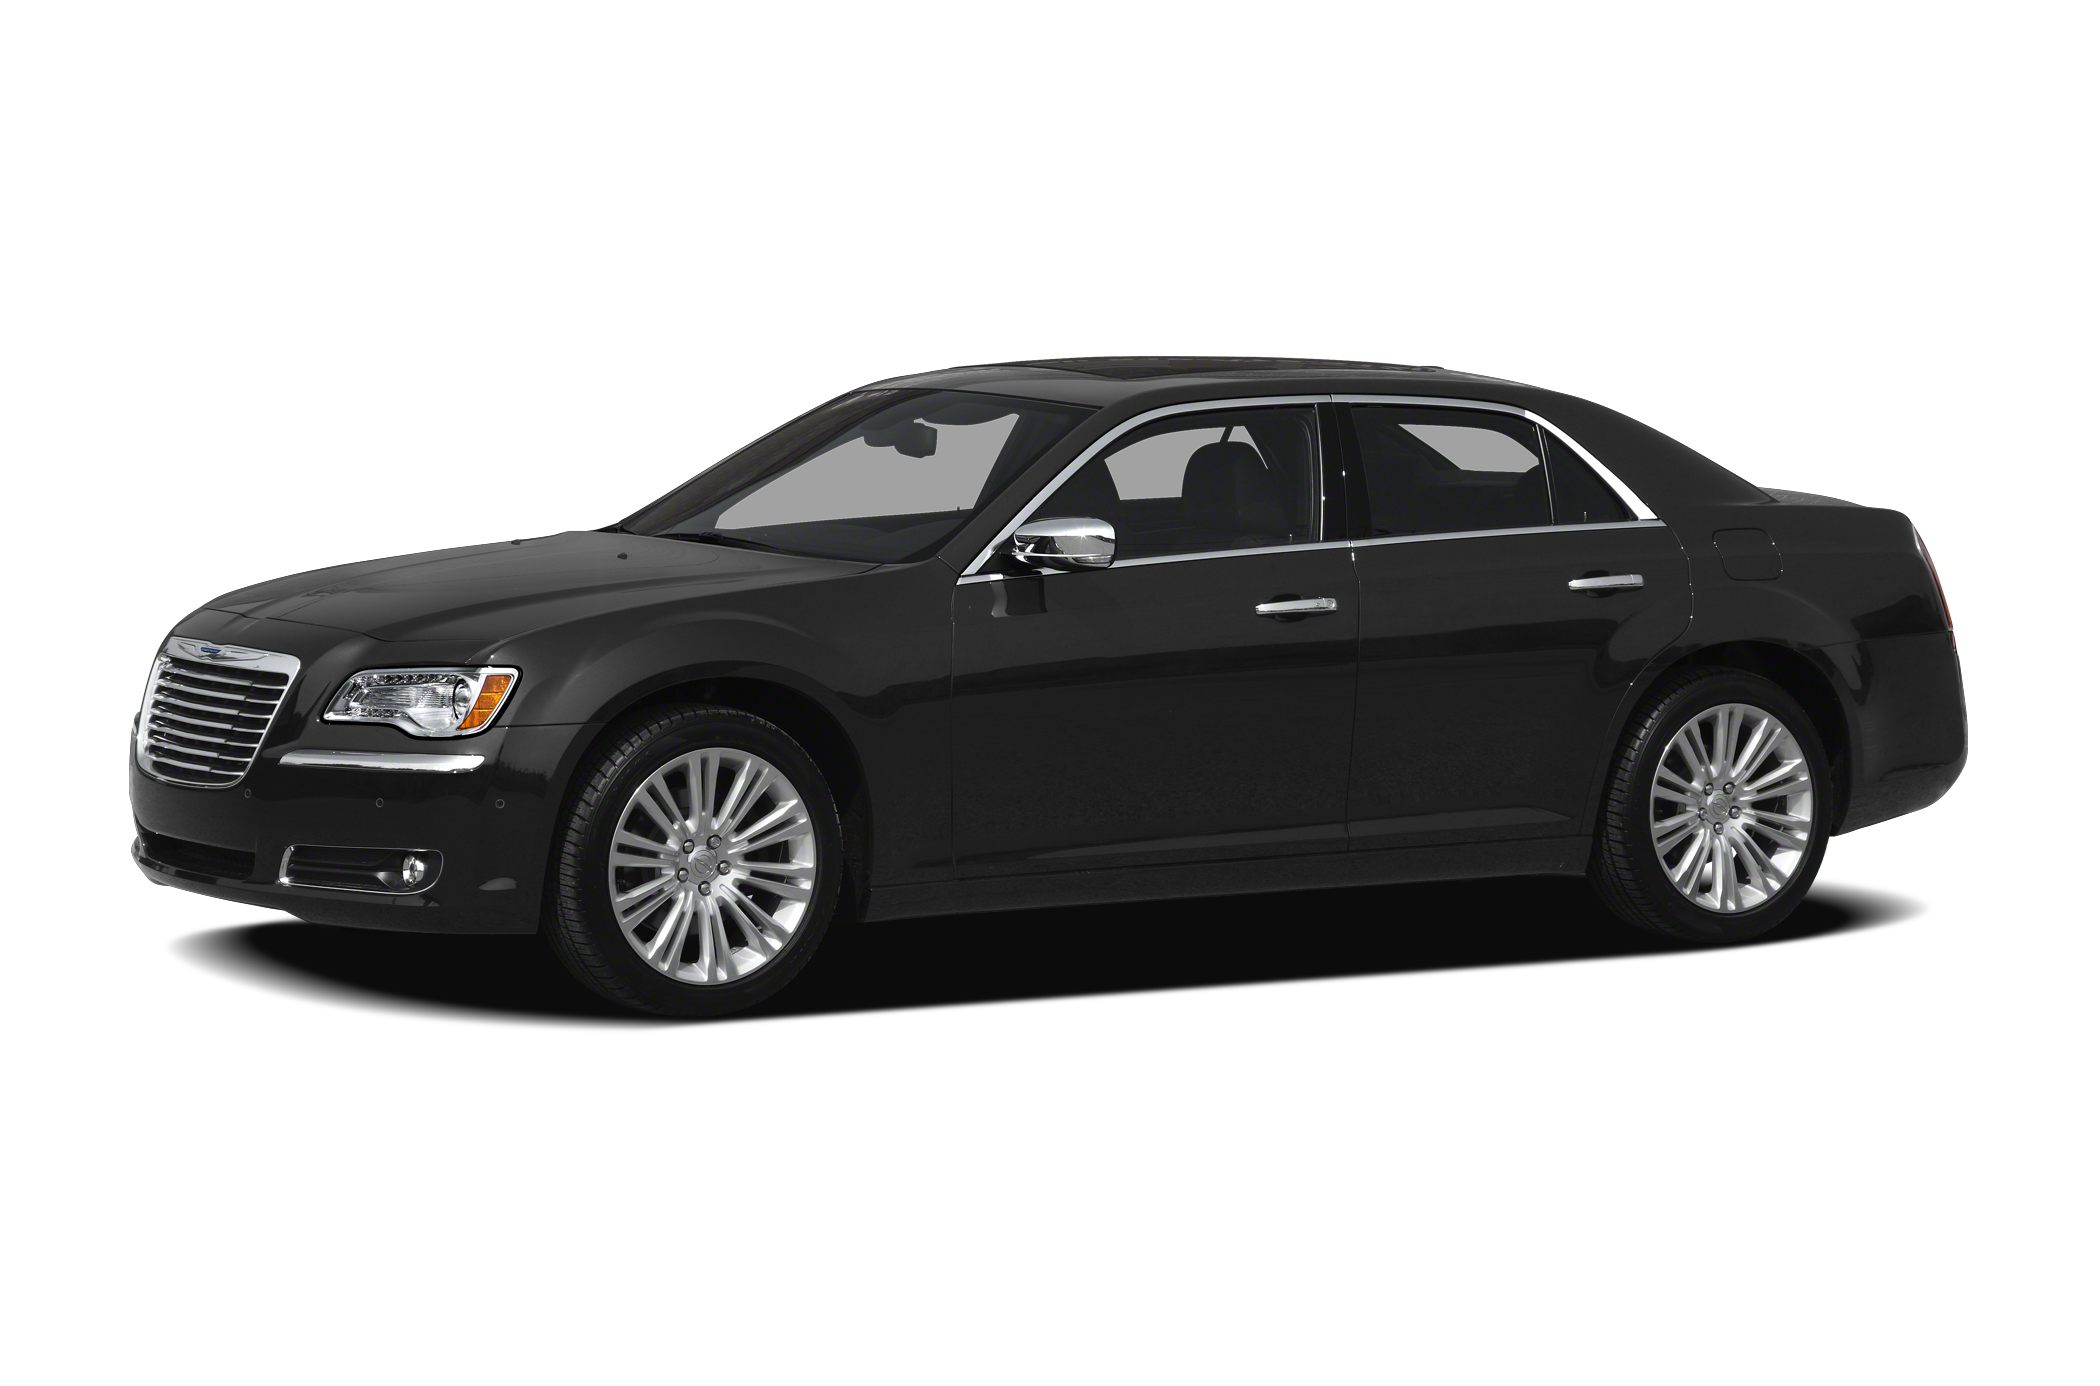 2012 Chrysler 300C Base Vehicle Detailed Recent Oil Change and Passed Dealer Inspection Looks a